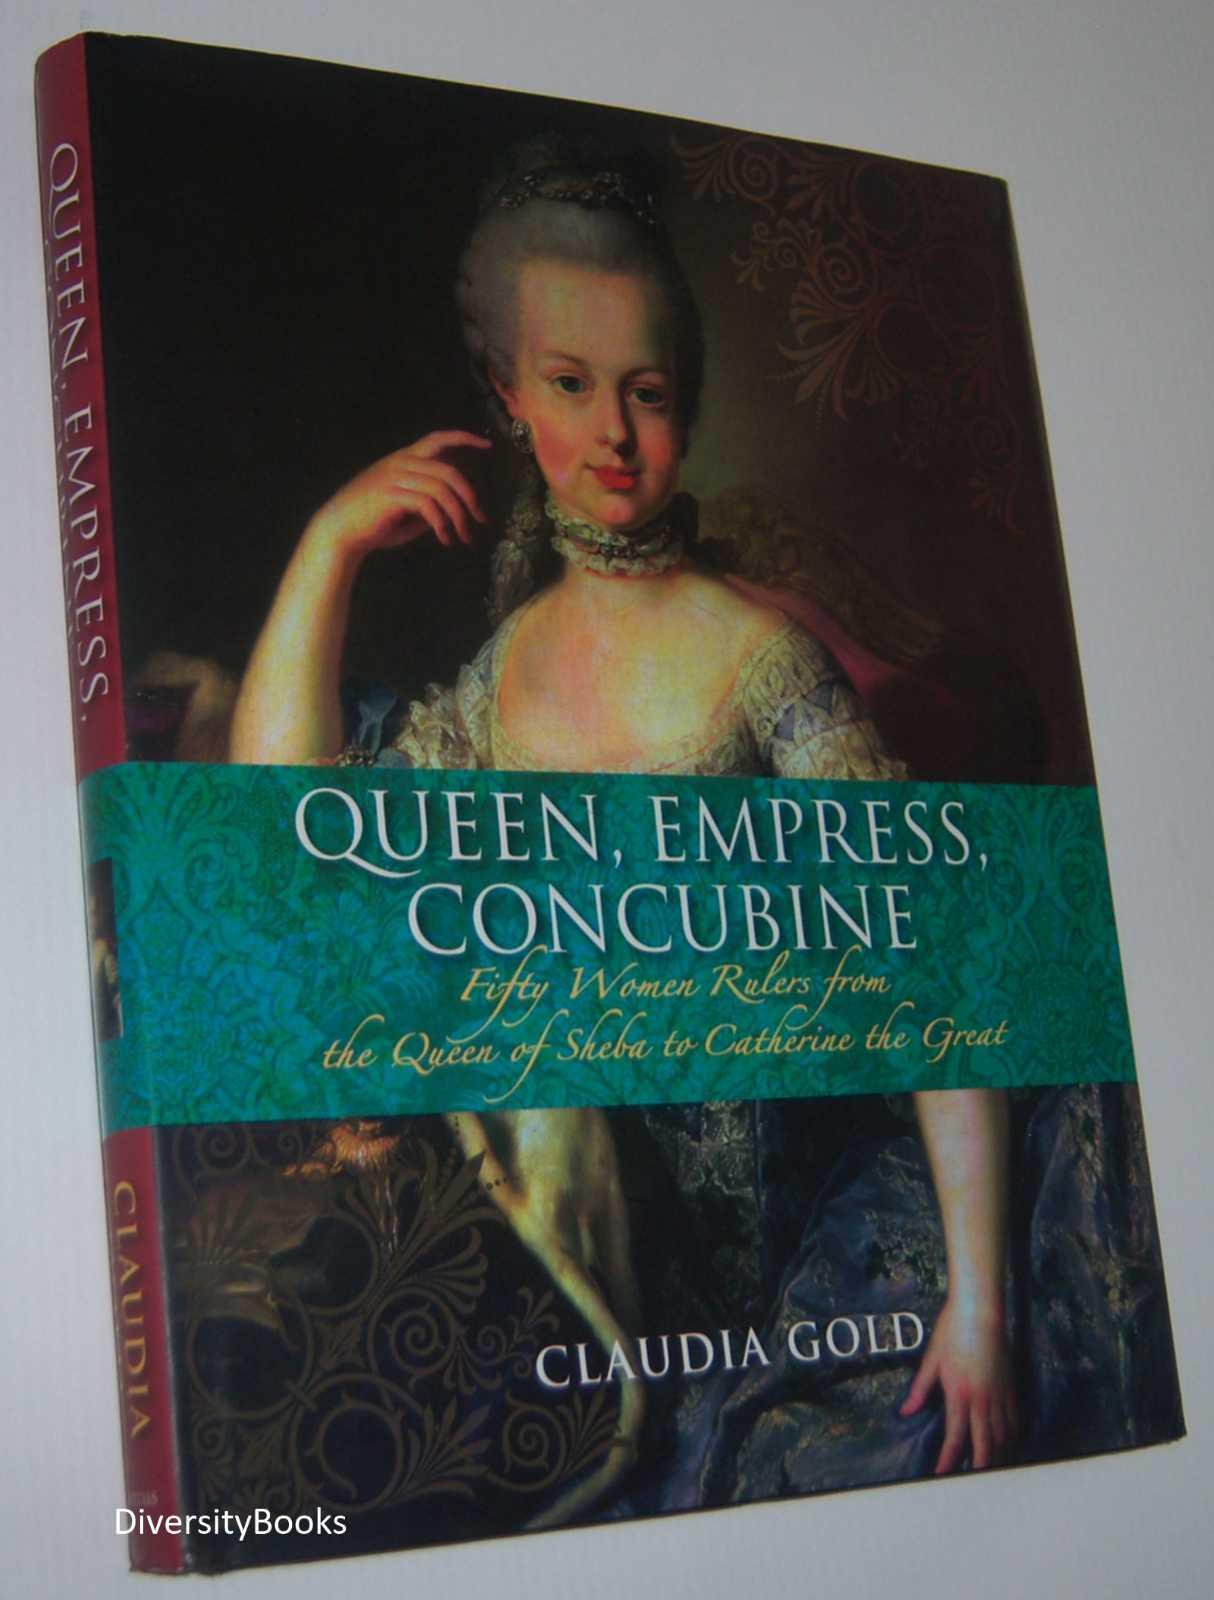 Image for QUEEN, EMPRESS, CONCUBINE: Fifty Women Rulers from the Queen of Sheba to Catherine the Great